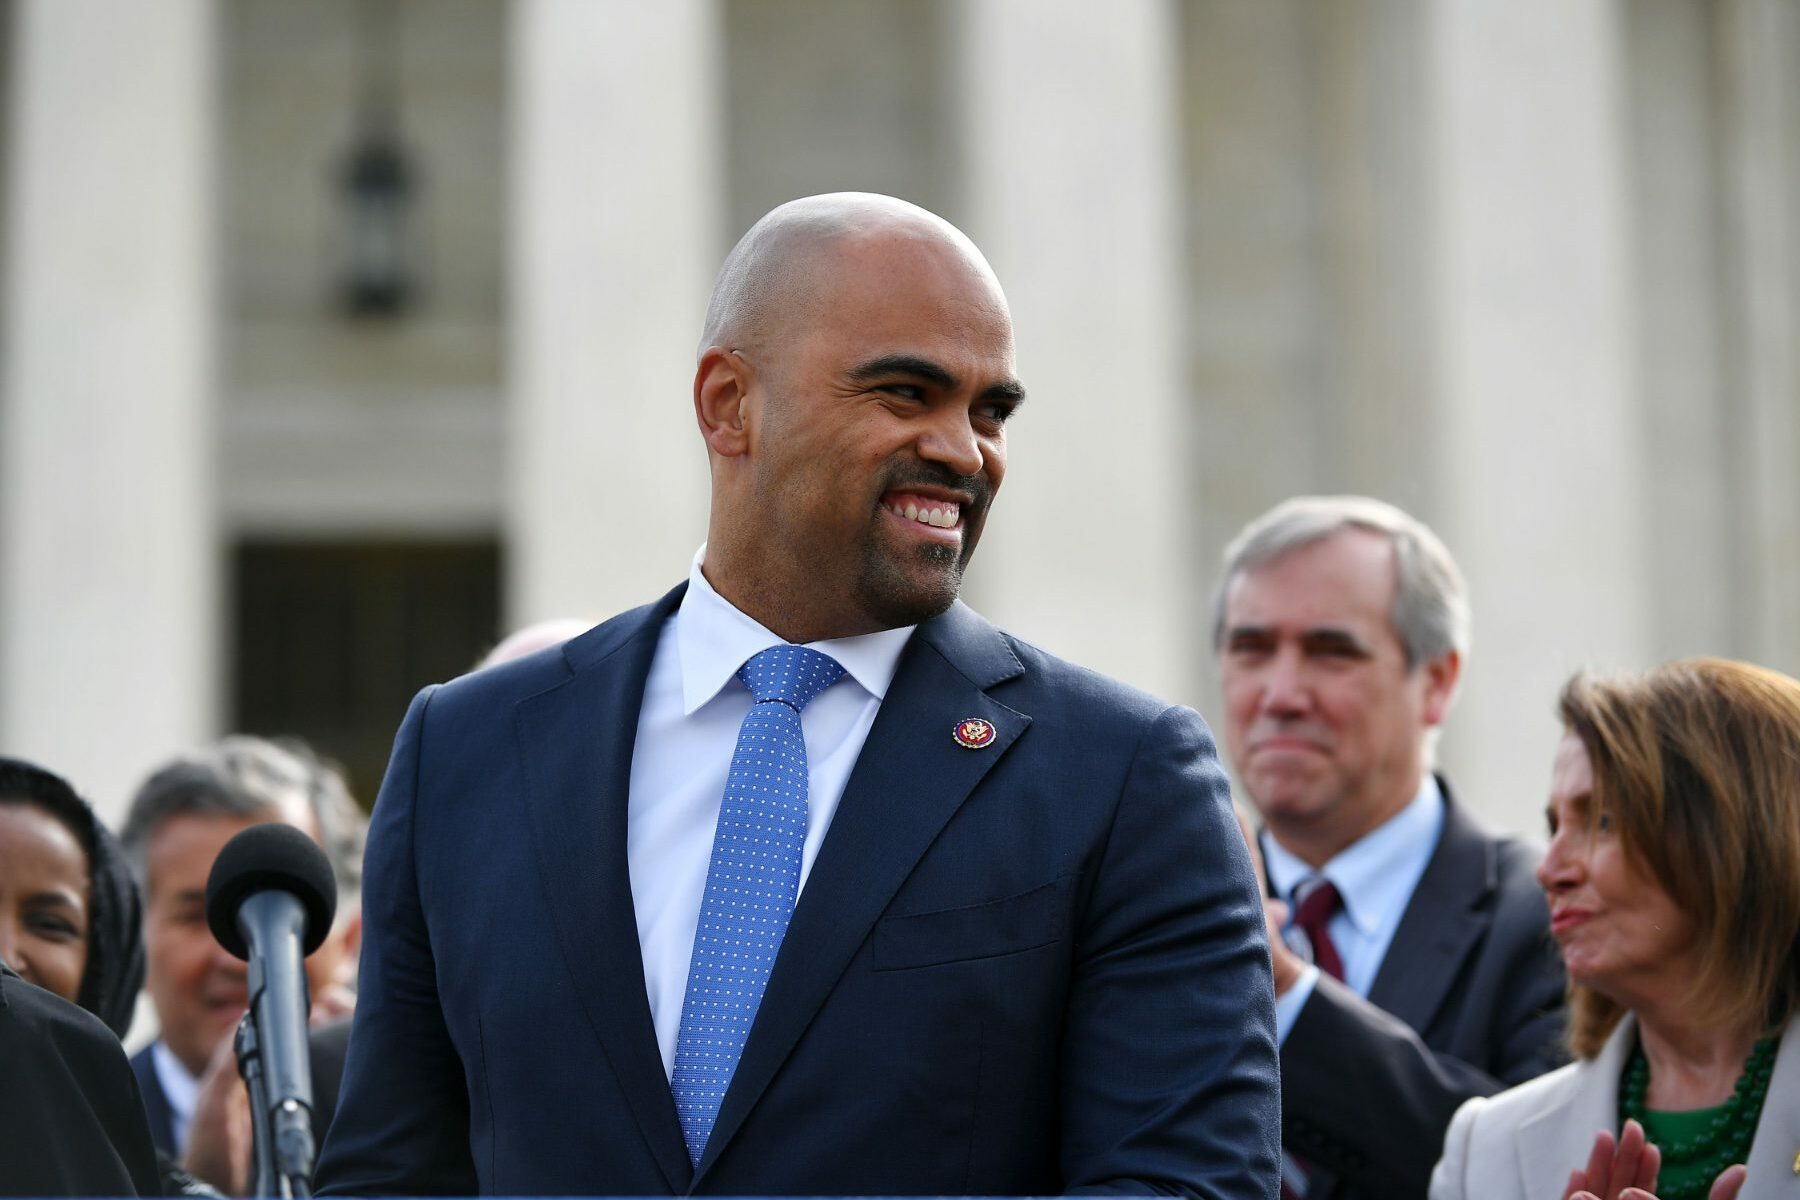 Colin Allred smiling before a microphone.